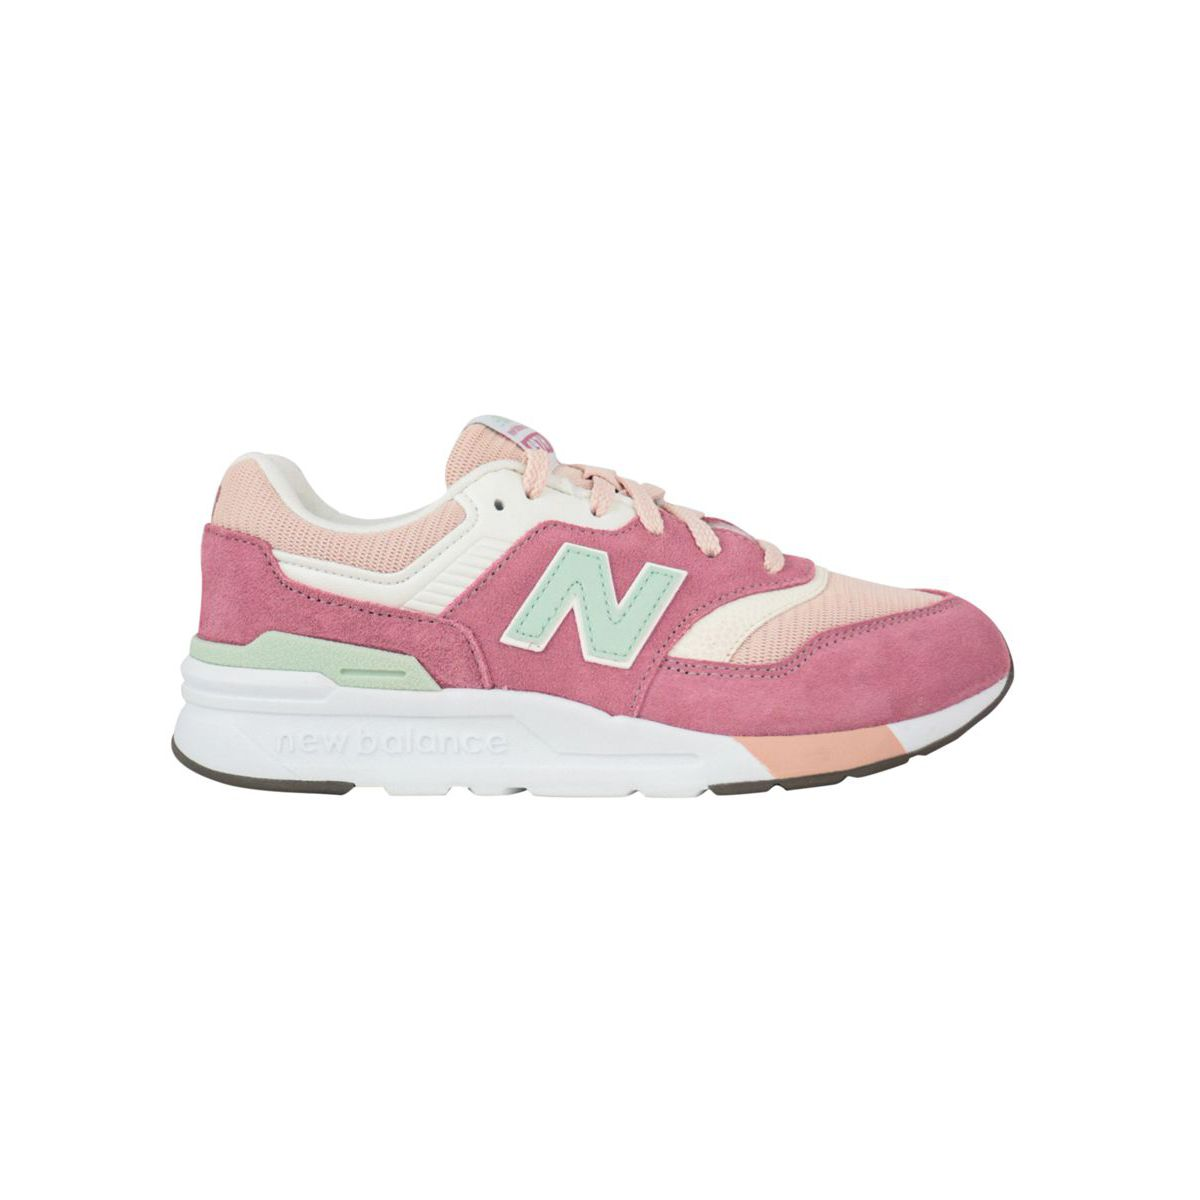 Suede and mesh sneakers 997H Essentials Pink New Balance